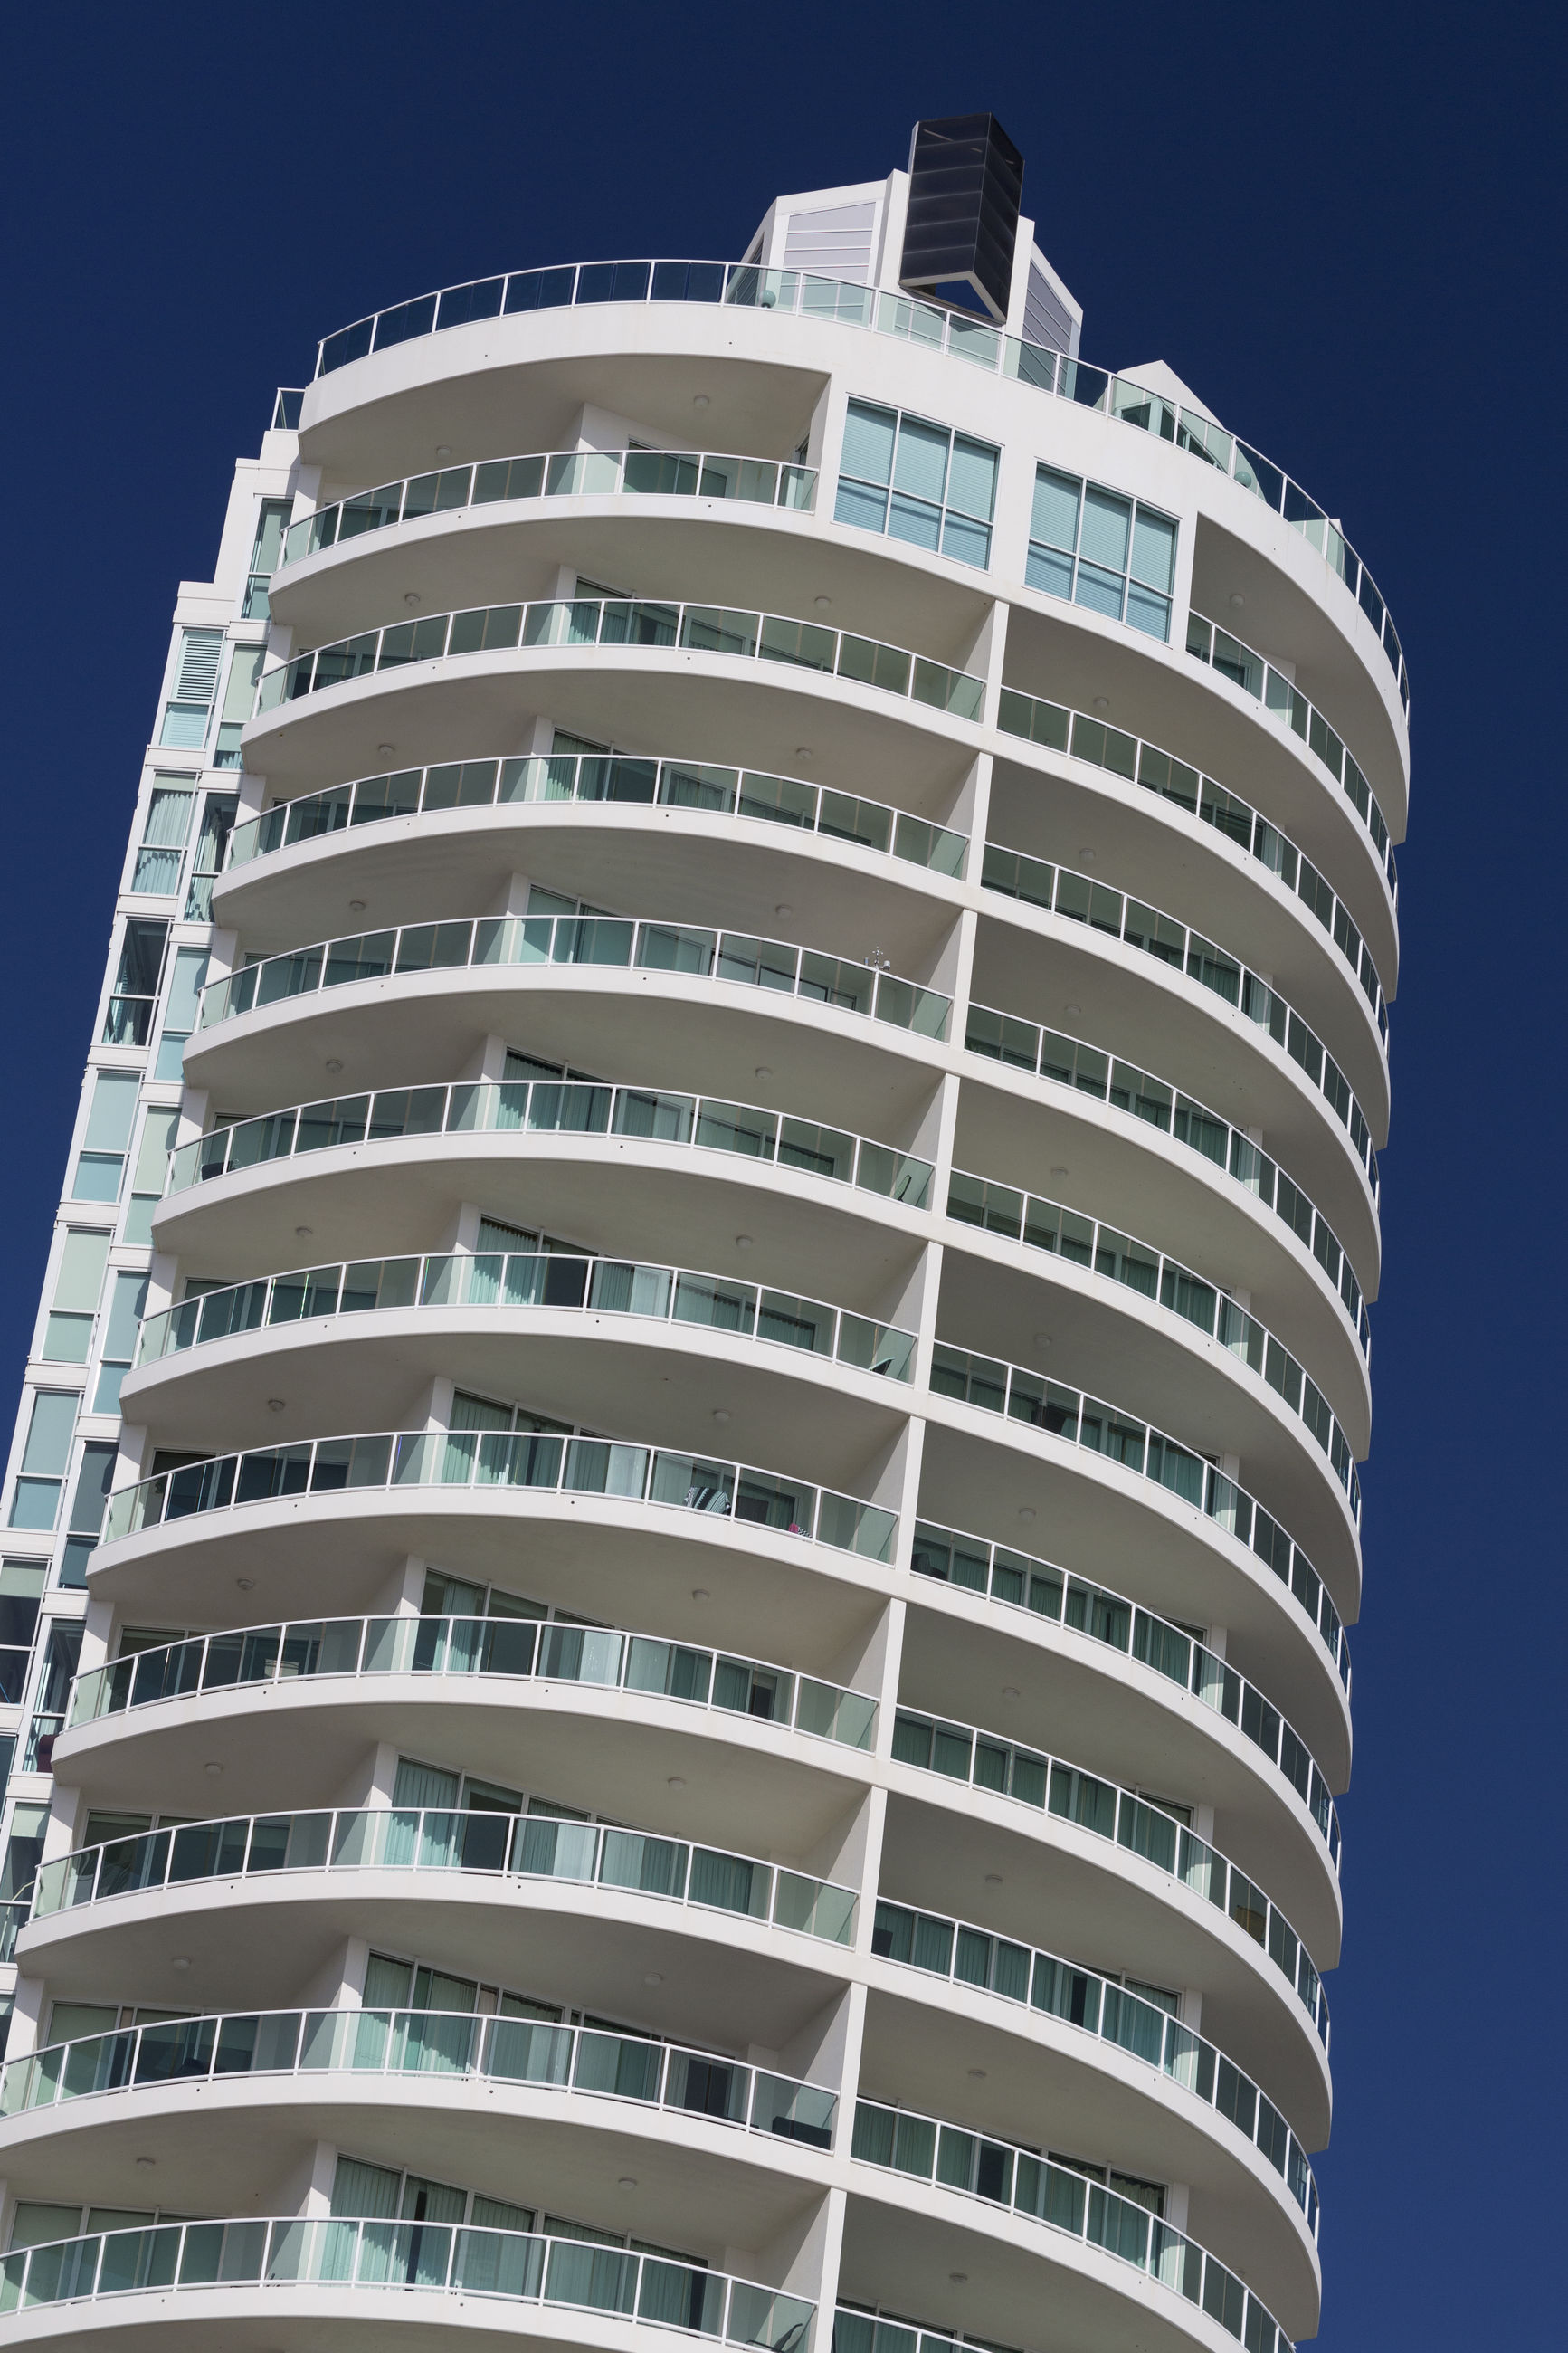 architecture, low angle view, building exterior, balcony, built structure, residential building, apartment, no people, city, day, modern, outdoors, clear sky, residential, sky